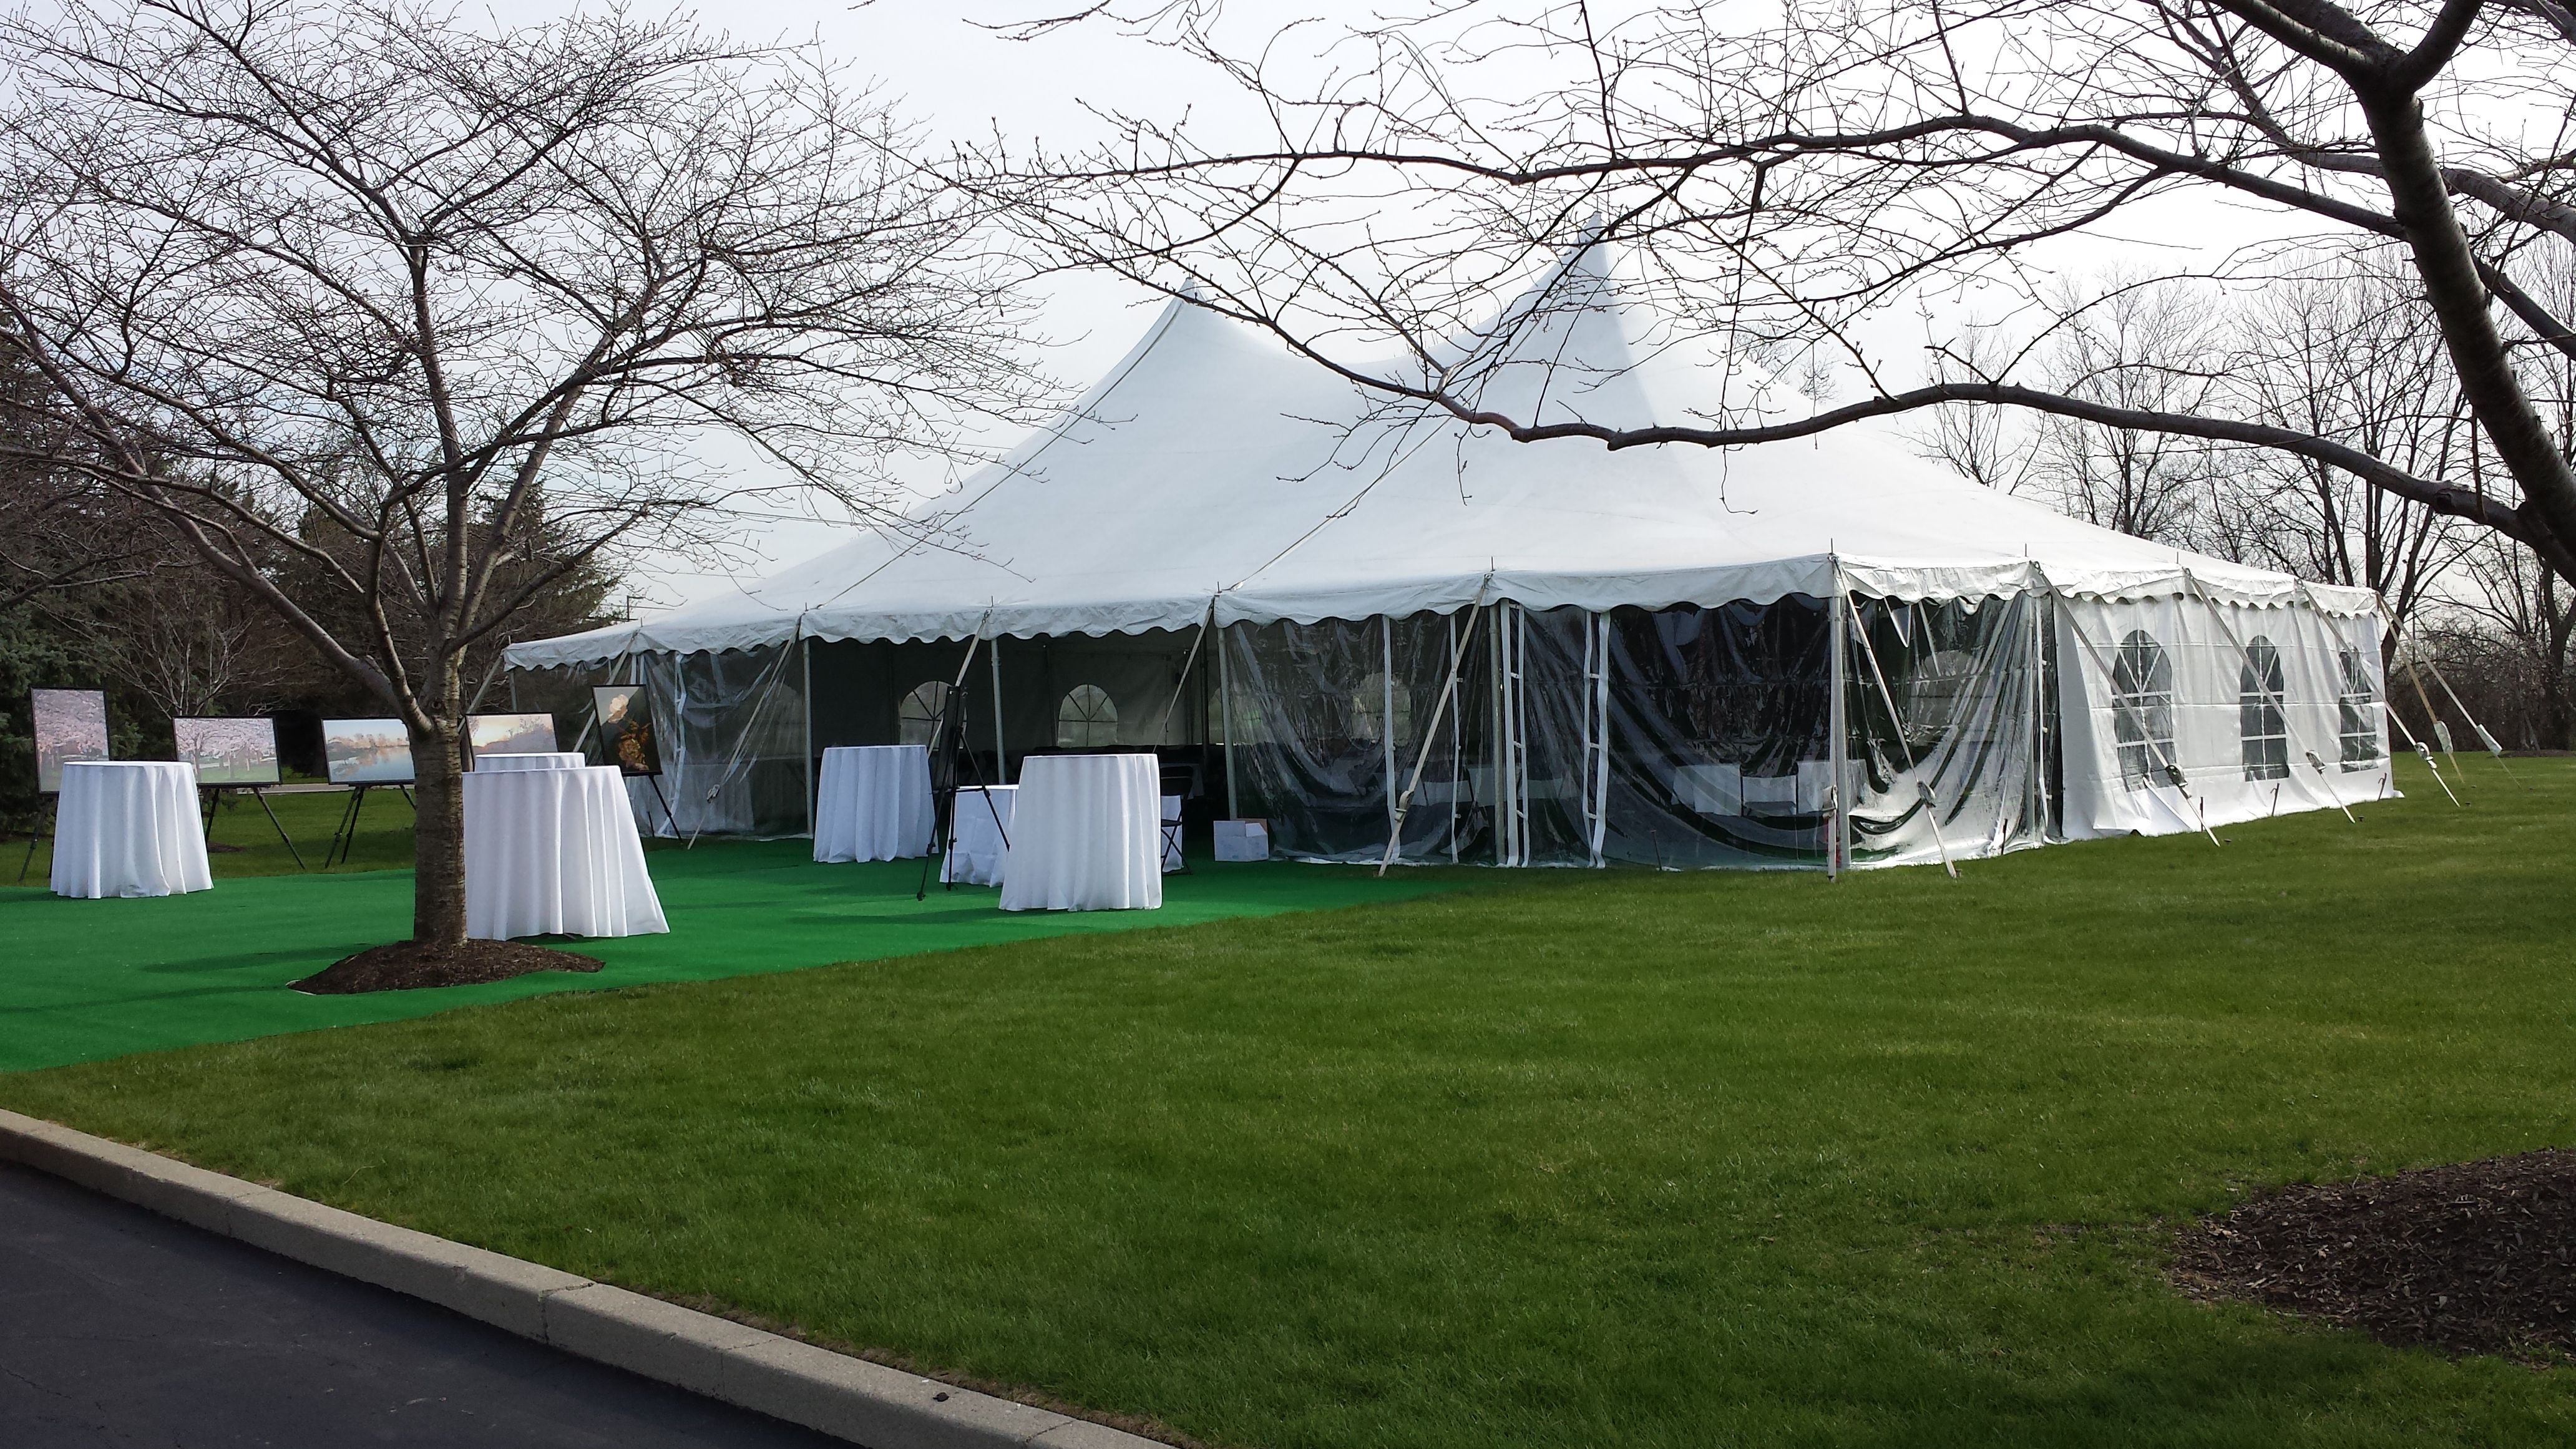 40 x 60 foot high peak tension tent with clear sidewalls and artificial turf. & High Peak Tension Tents - Metro Cuisine - Columbus OH